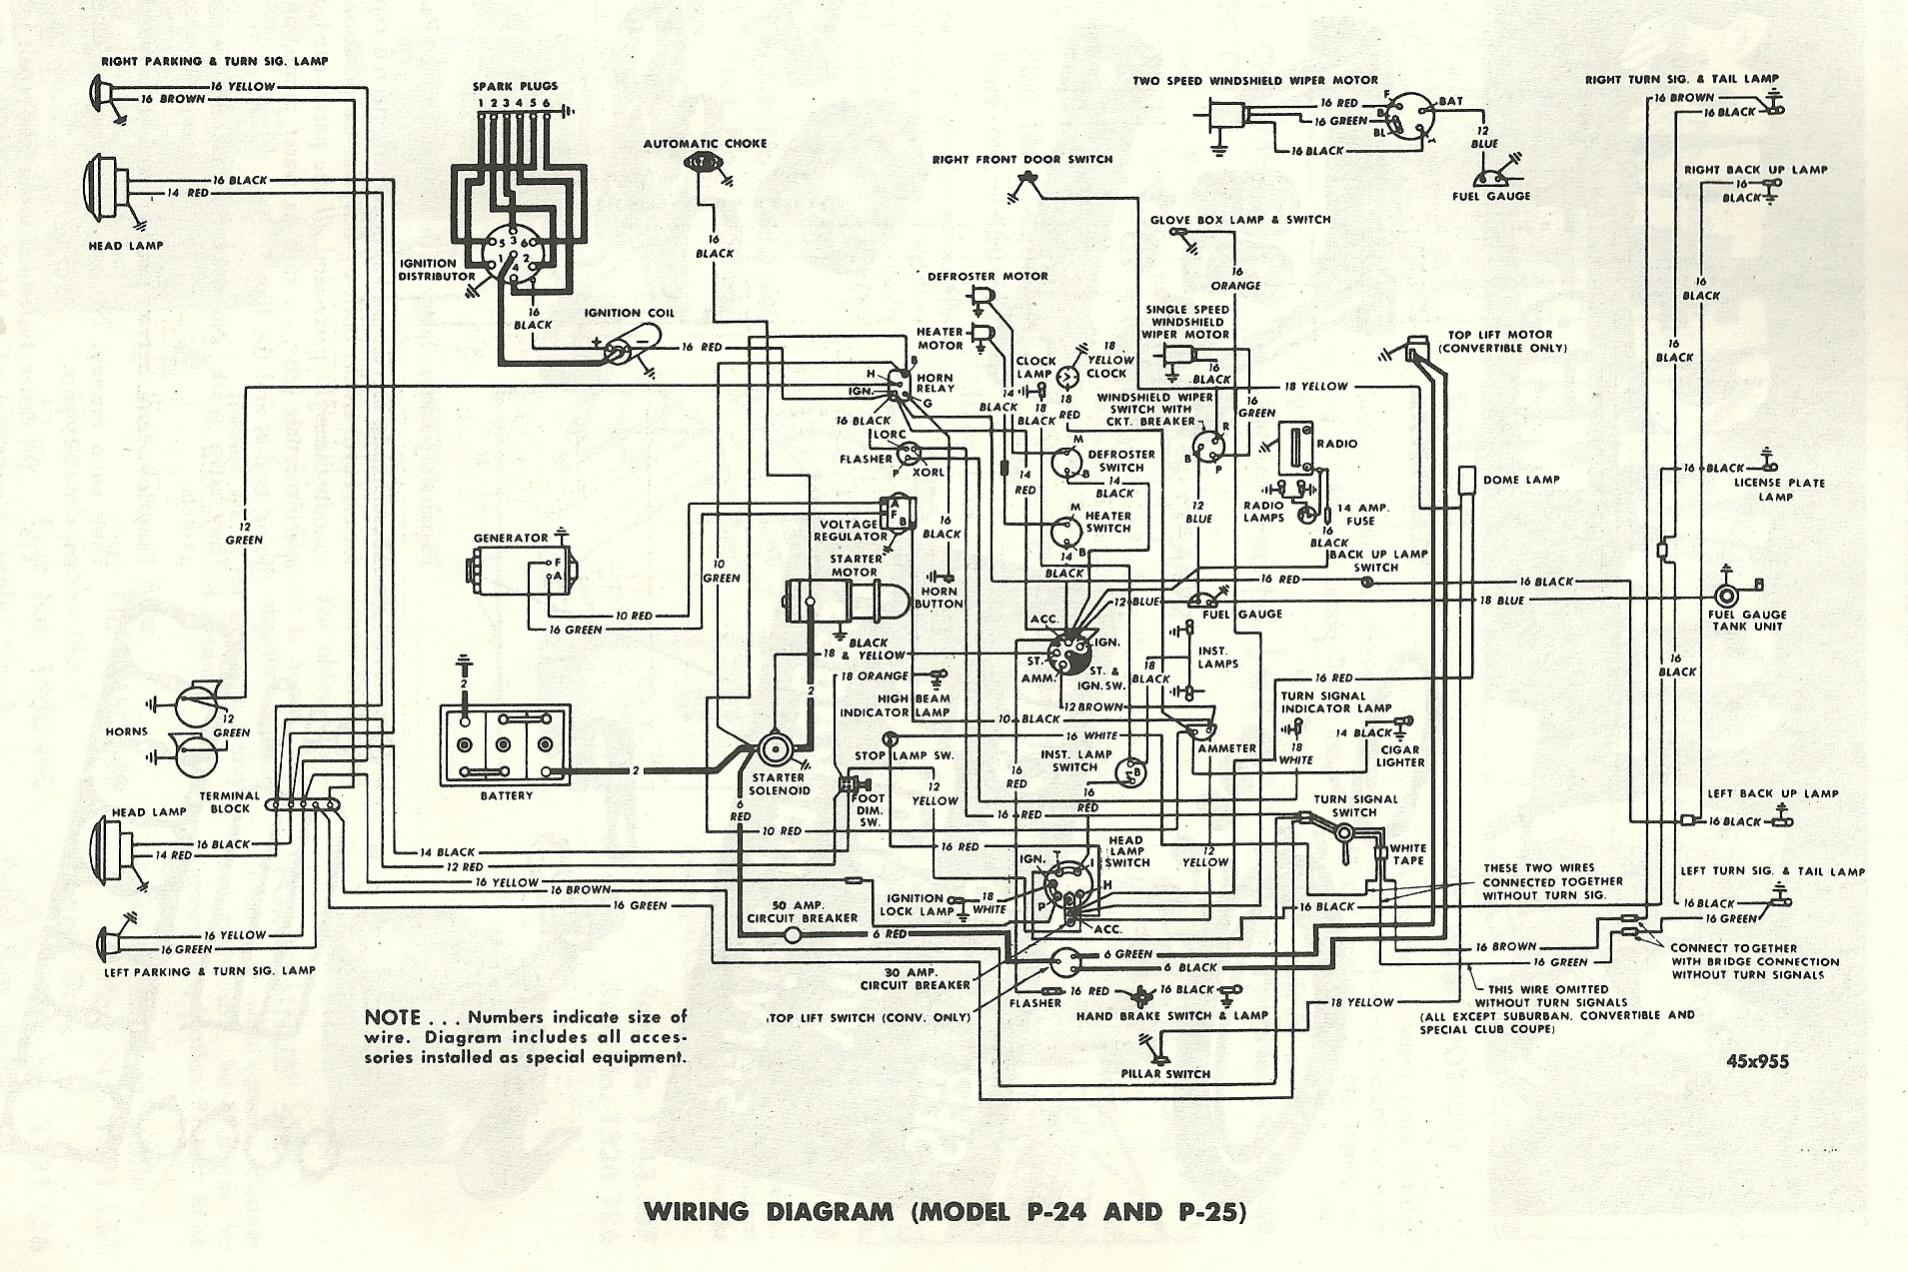 horn relay 53 plymouth the h a m b,1951 Desoto Headlight Wiring Diagram